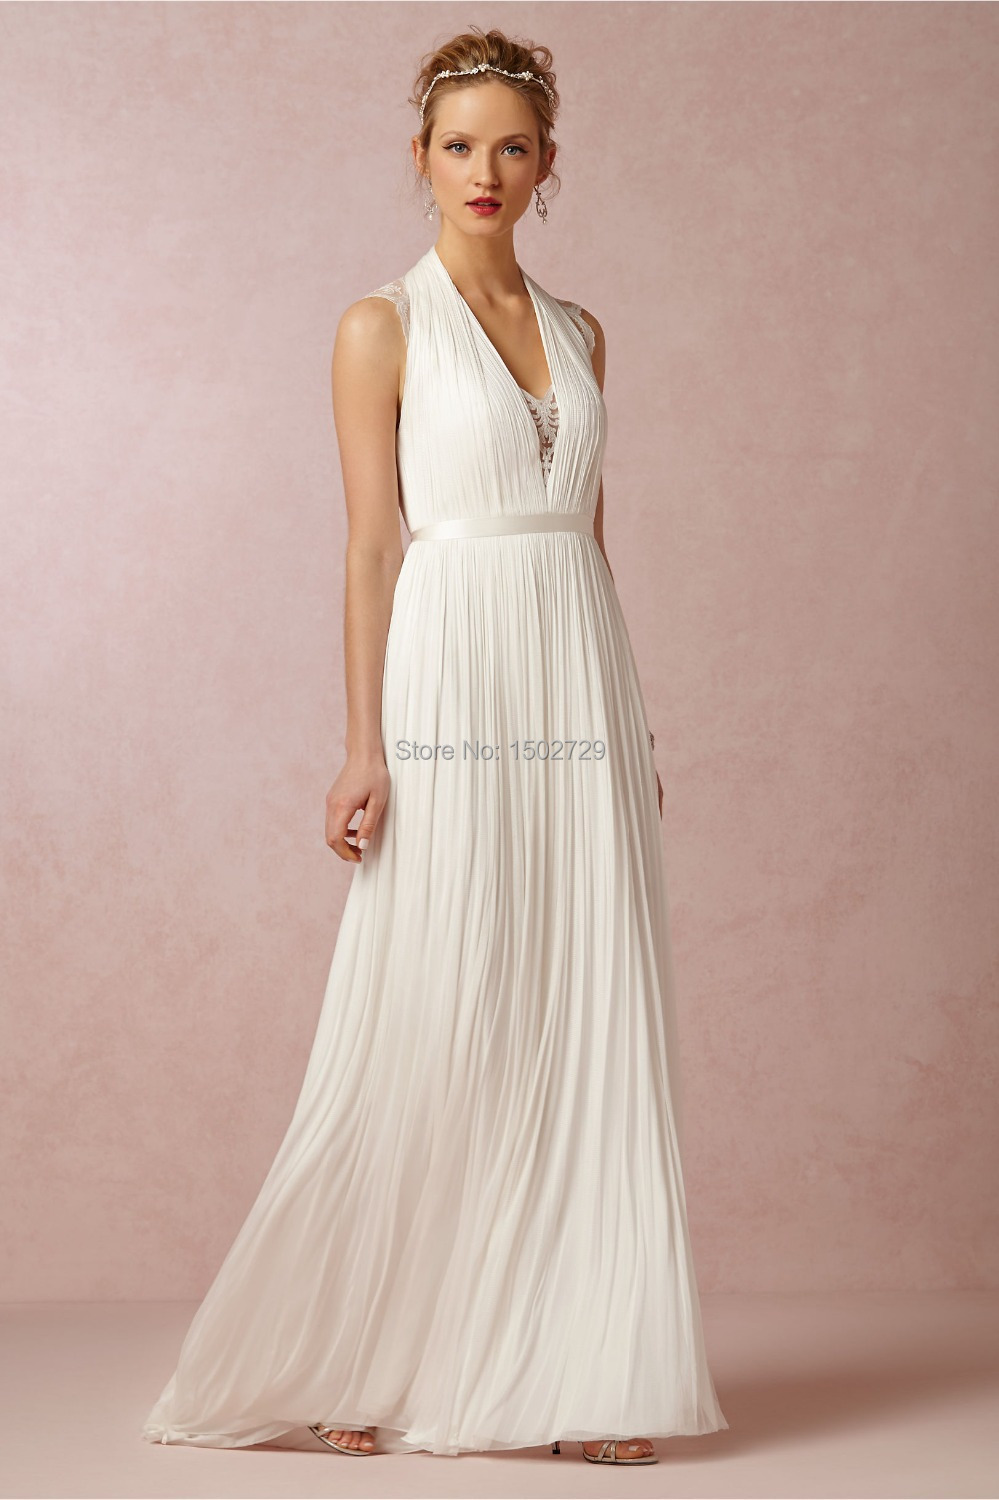 Beach wedding dresses grecian style dress ideas for Greece style wedding dresses